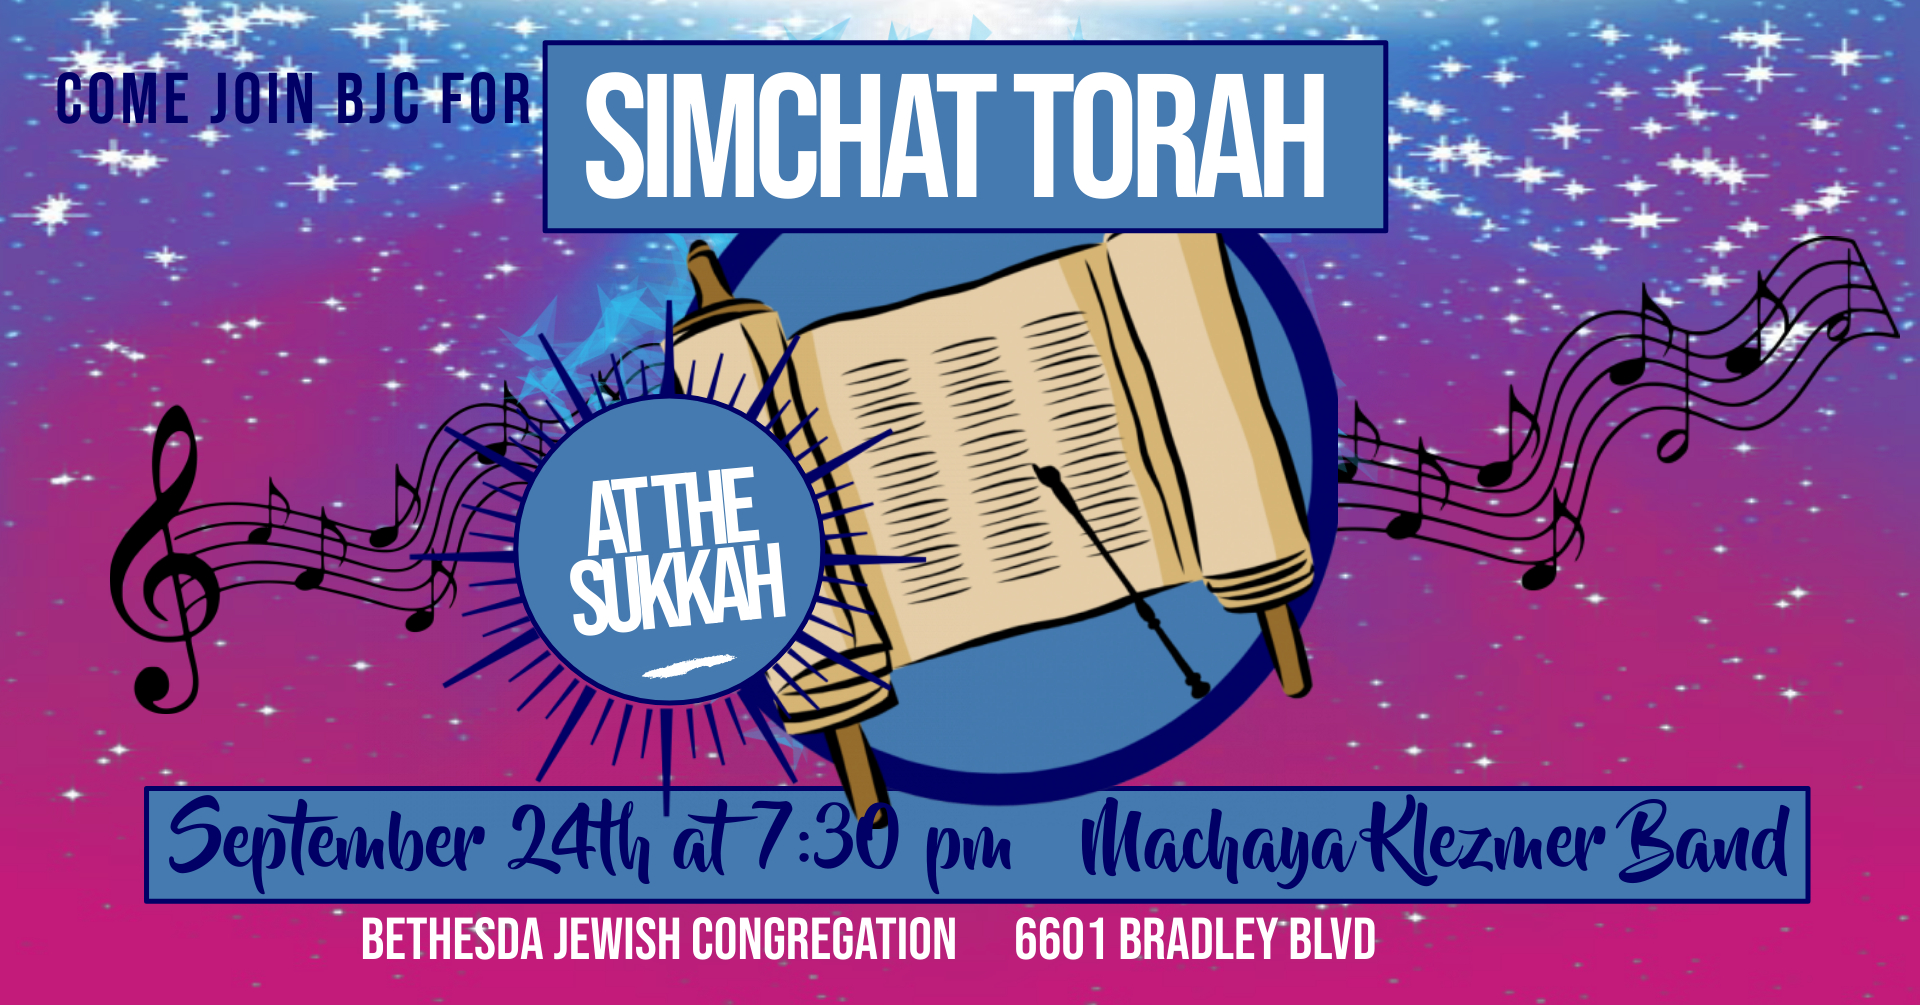 """<a href=""""https://www.bethesdajewish.org/event/simchattorah""""                                     target=""""_blank"""">                                                                 <span class=""""slider_title"""">                                     Simchat Torah at the Sukkah                                </span>                                                                 </a>                                                                                                                                                                                       <span class=""""slider_description"""">Come join BJC for singing and prayer as we finish the Torah!</span>"""